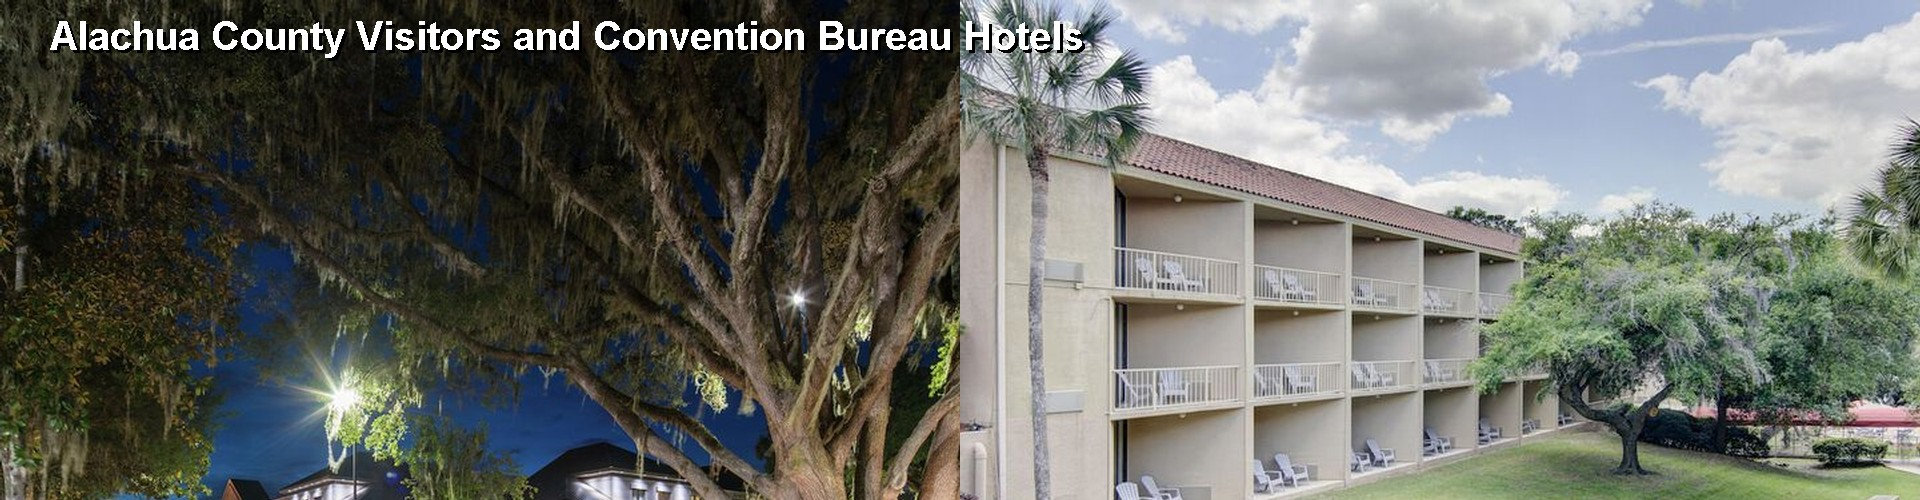 5 Best Hotels near Alachua County Visitors and Convention Bureau